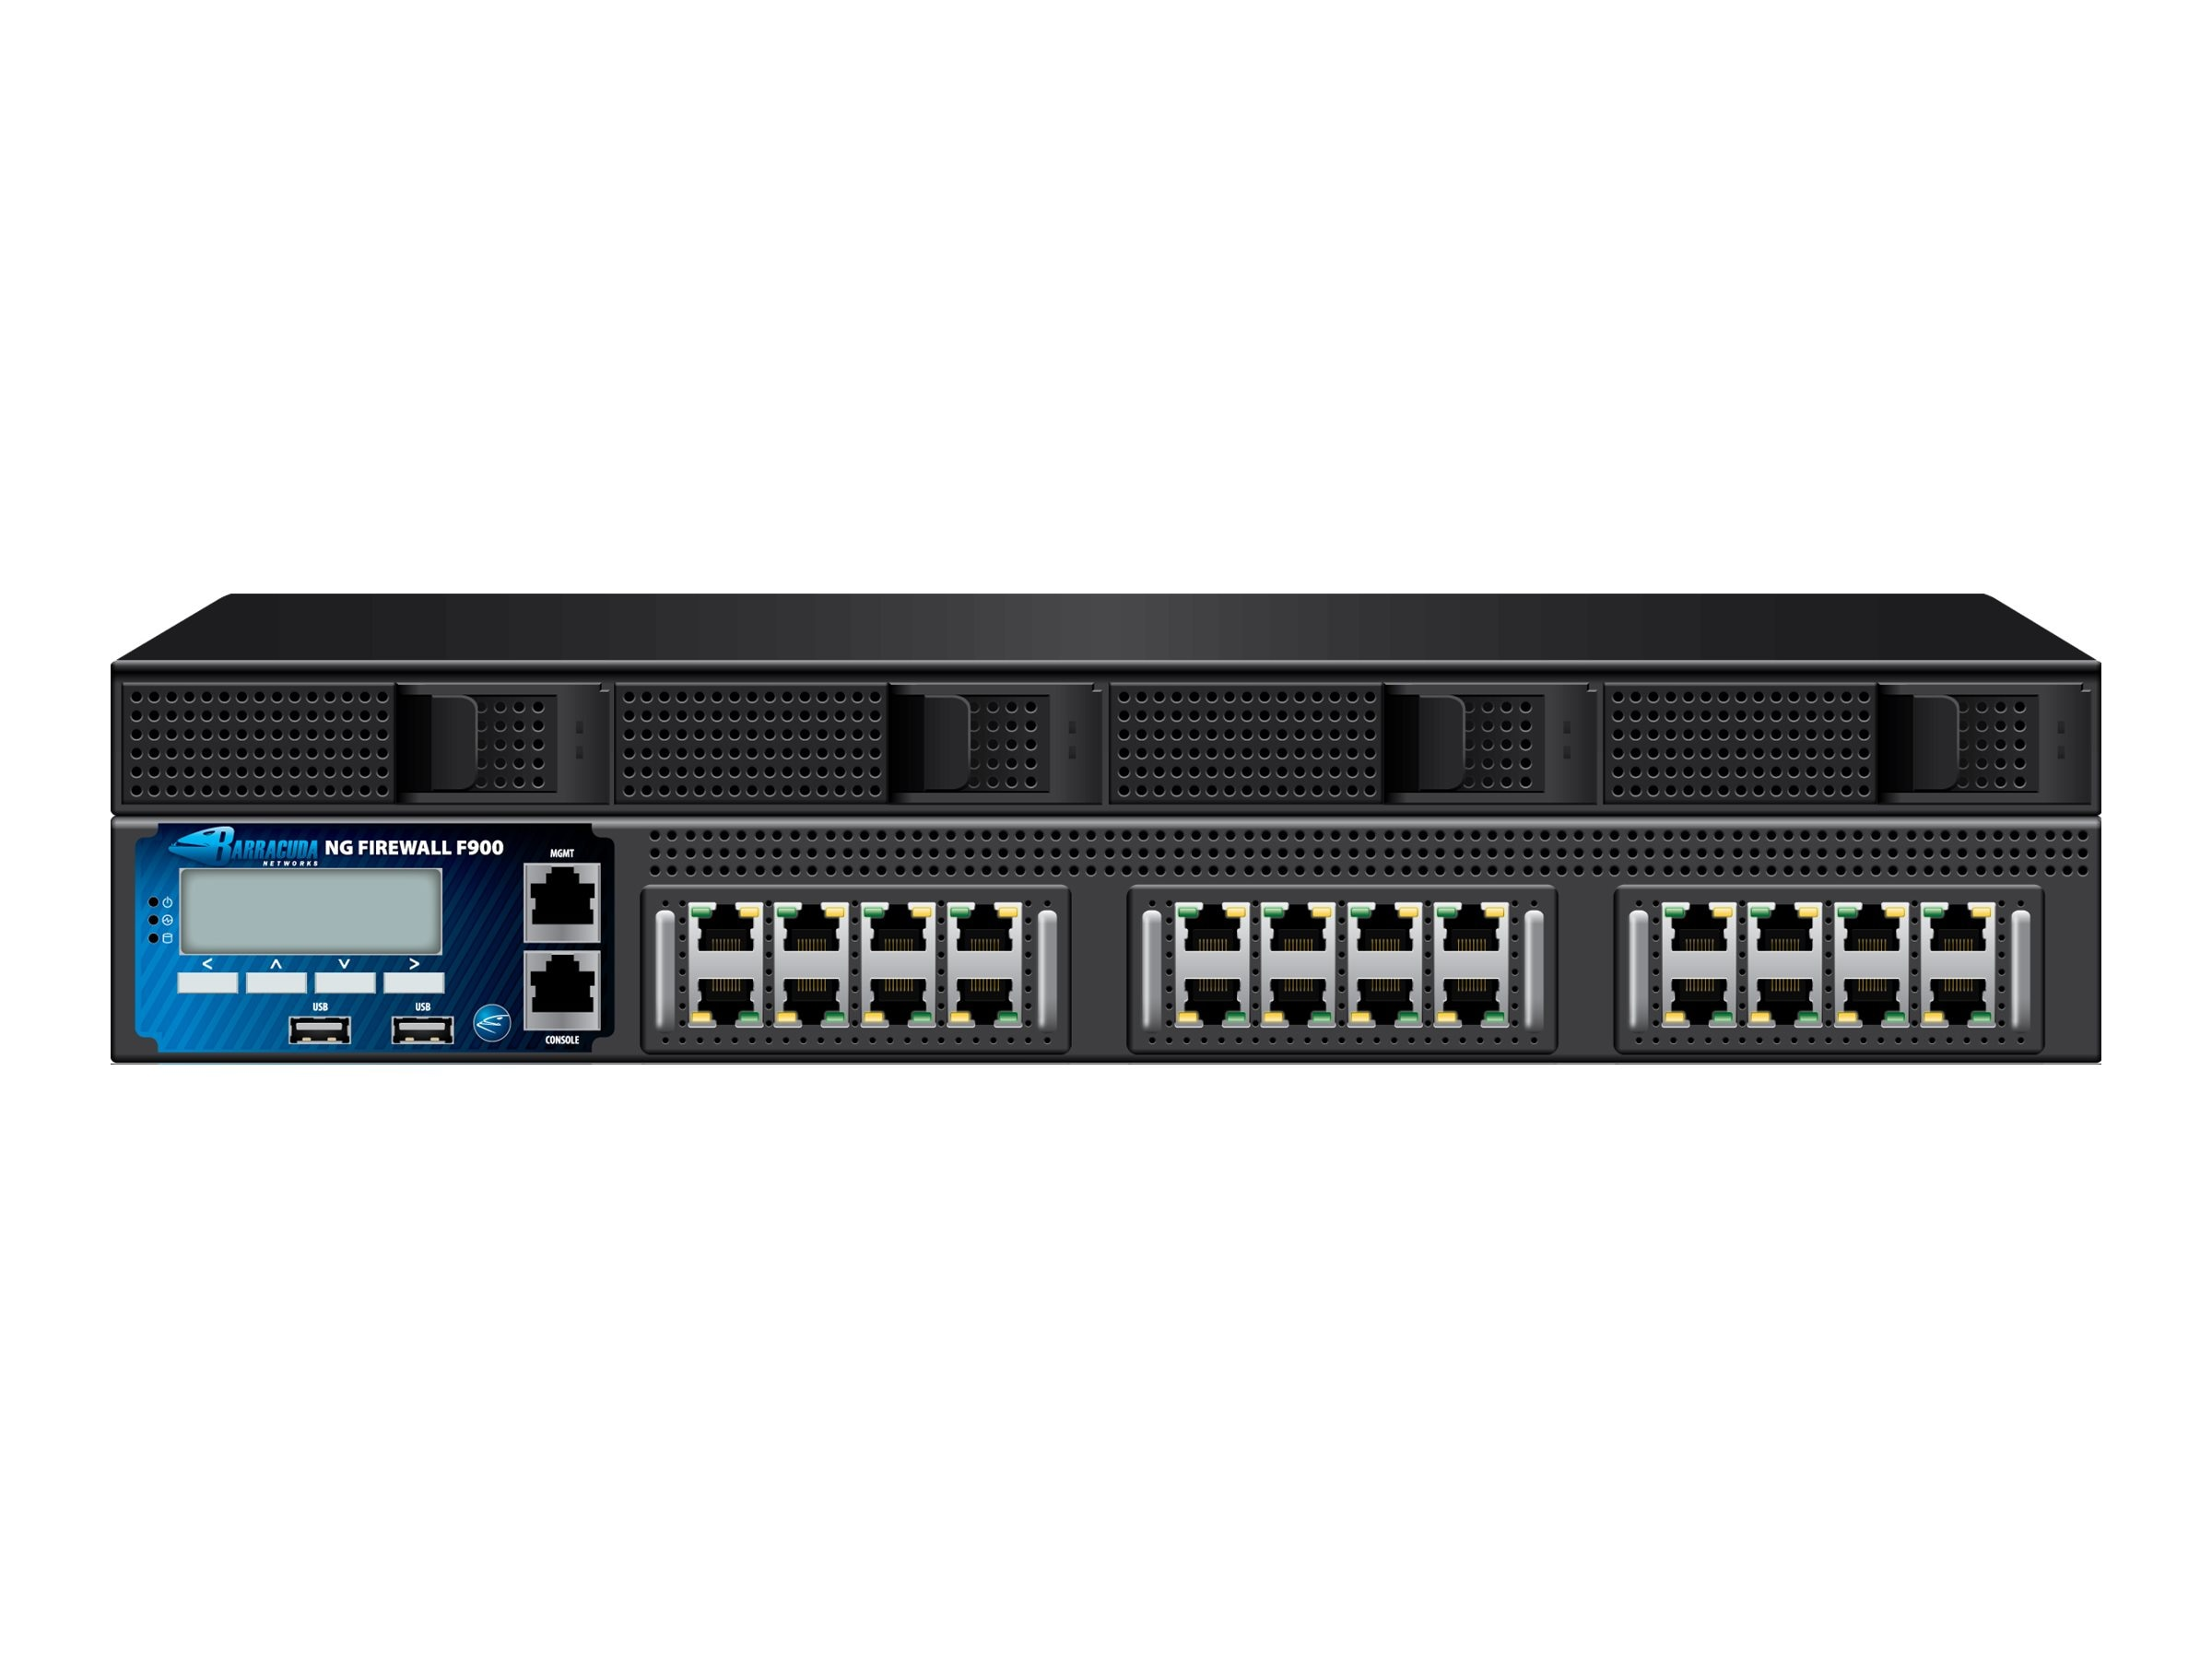 Barracuda NG Firewall F900 w 5-year Energize Updates, BNGF900A5, 13470950, Network Firewall/VPN - Hardware